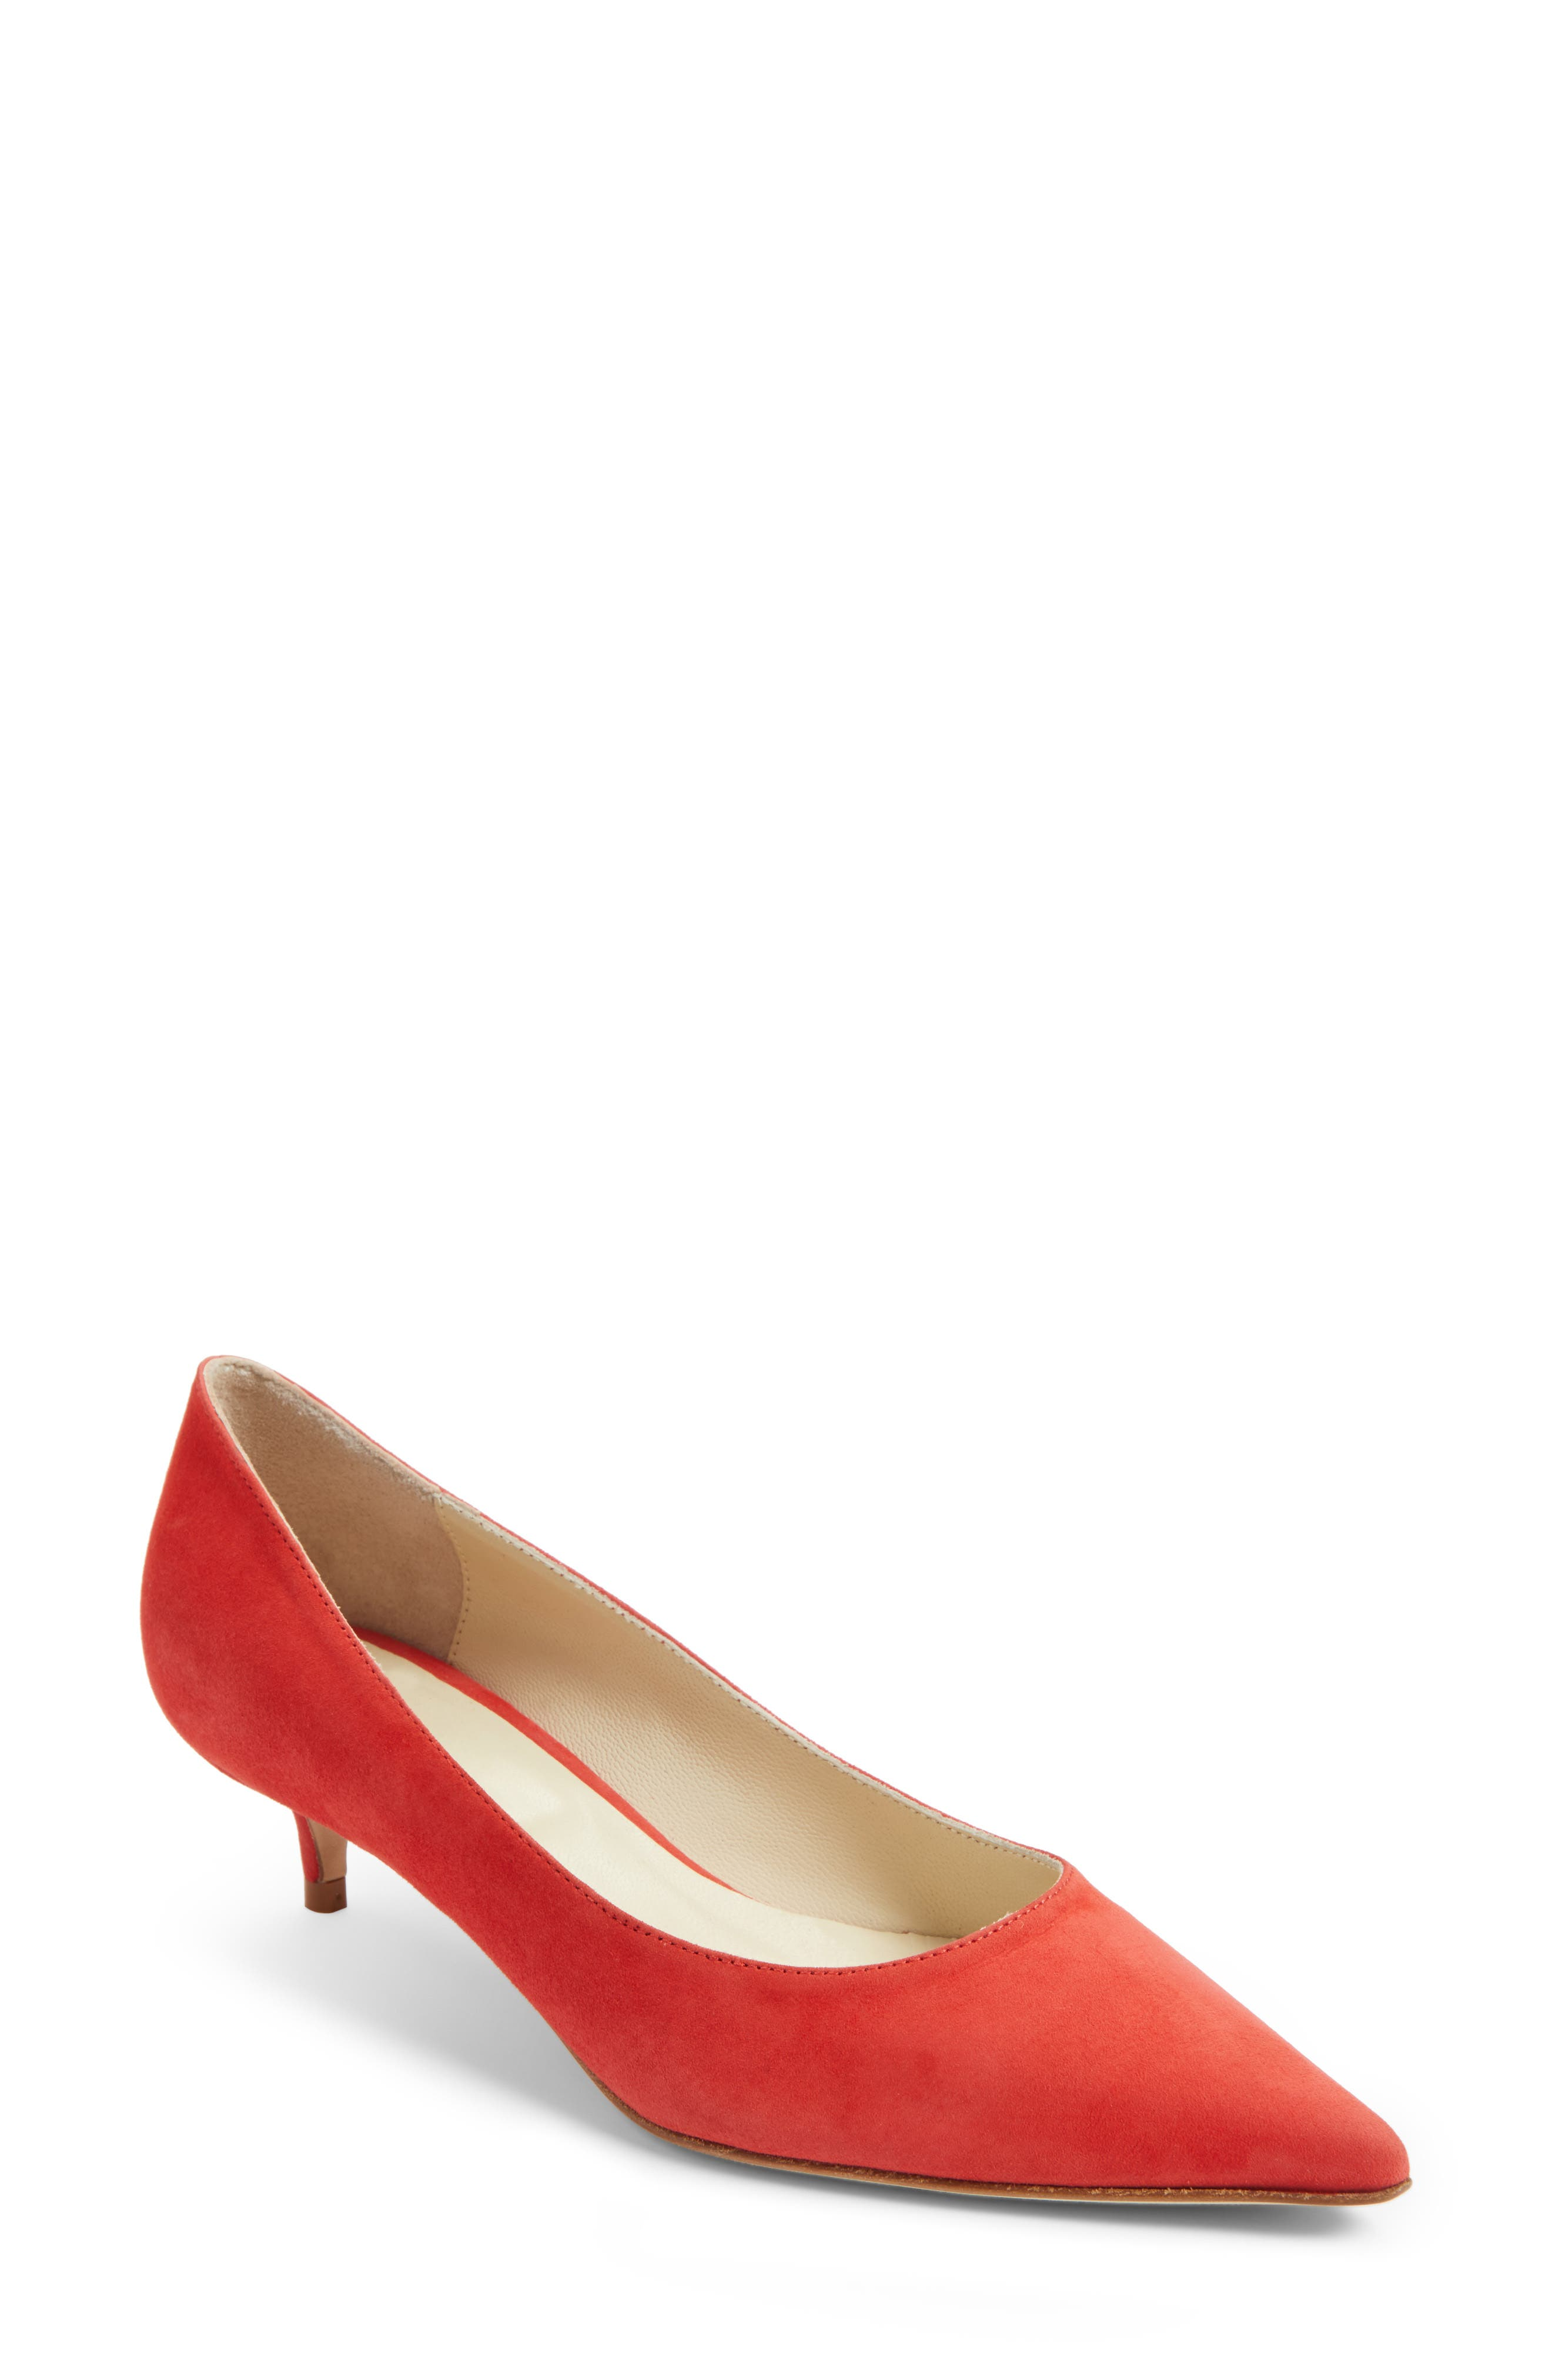 Alternate Image 1 Selected - Butter Born Pointy Toe Pump (Women)